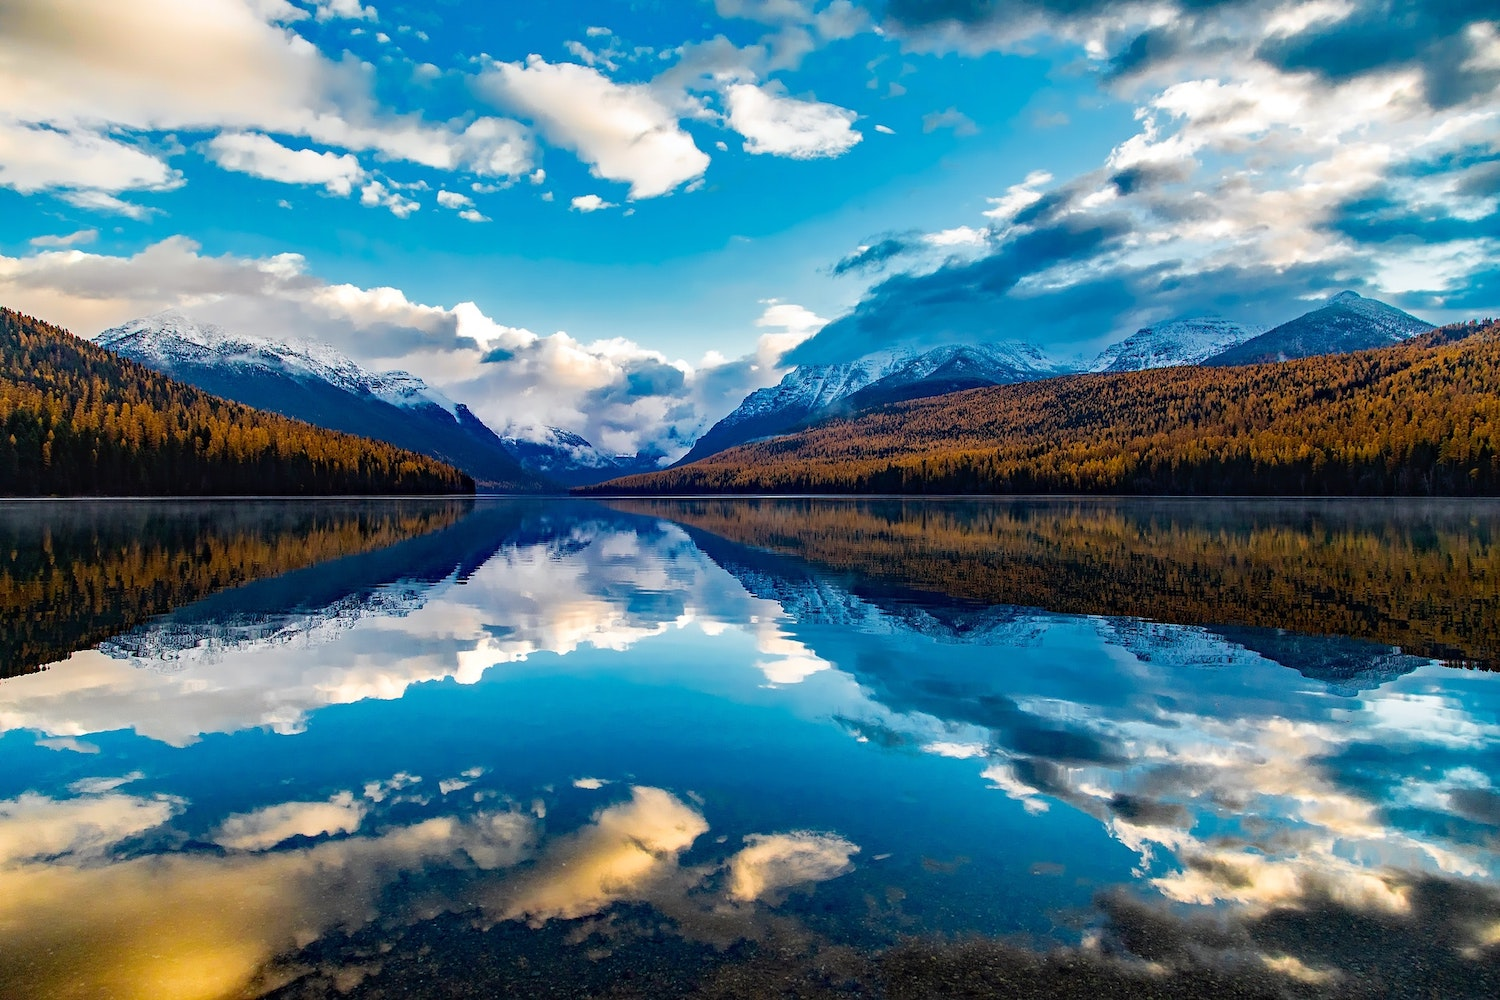 Lake McDonald, MT